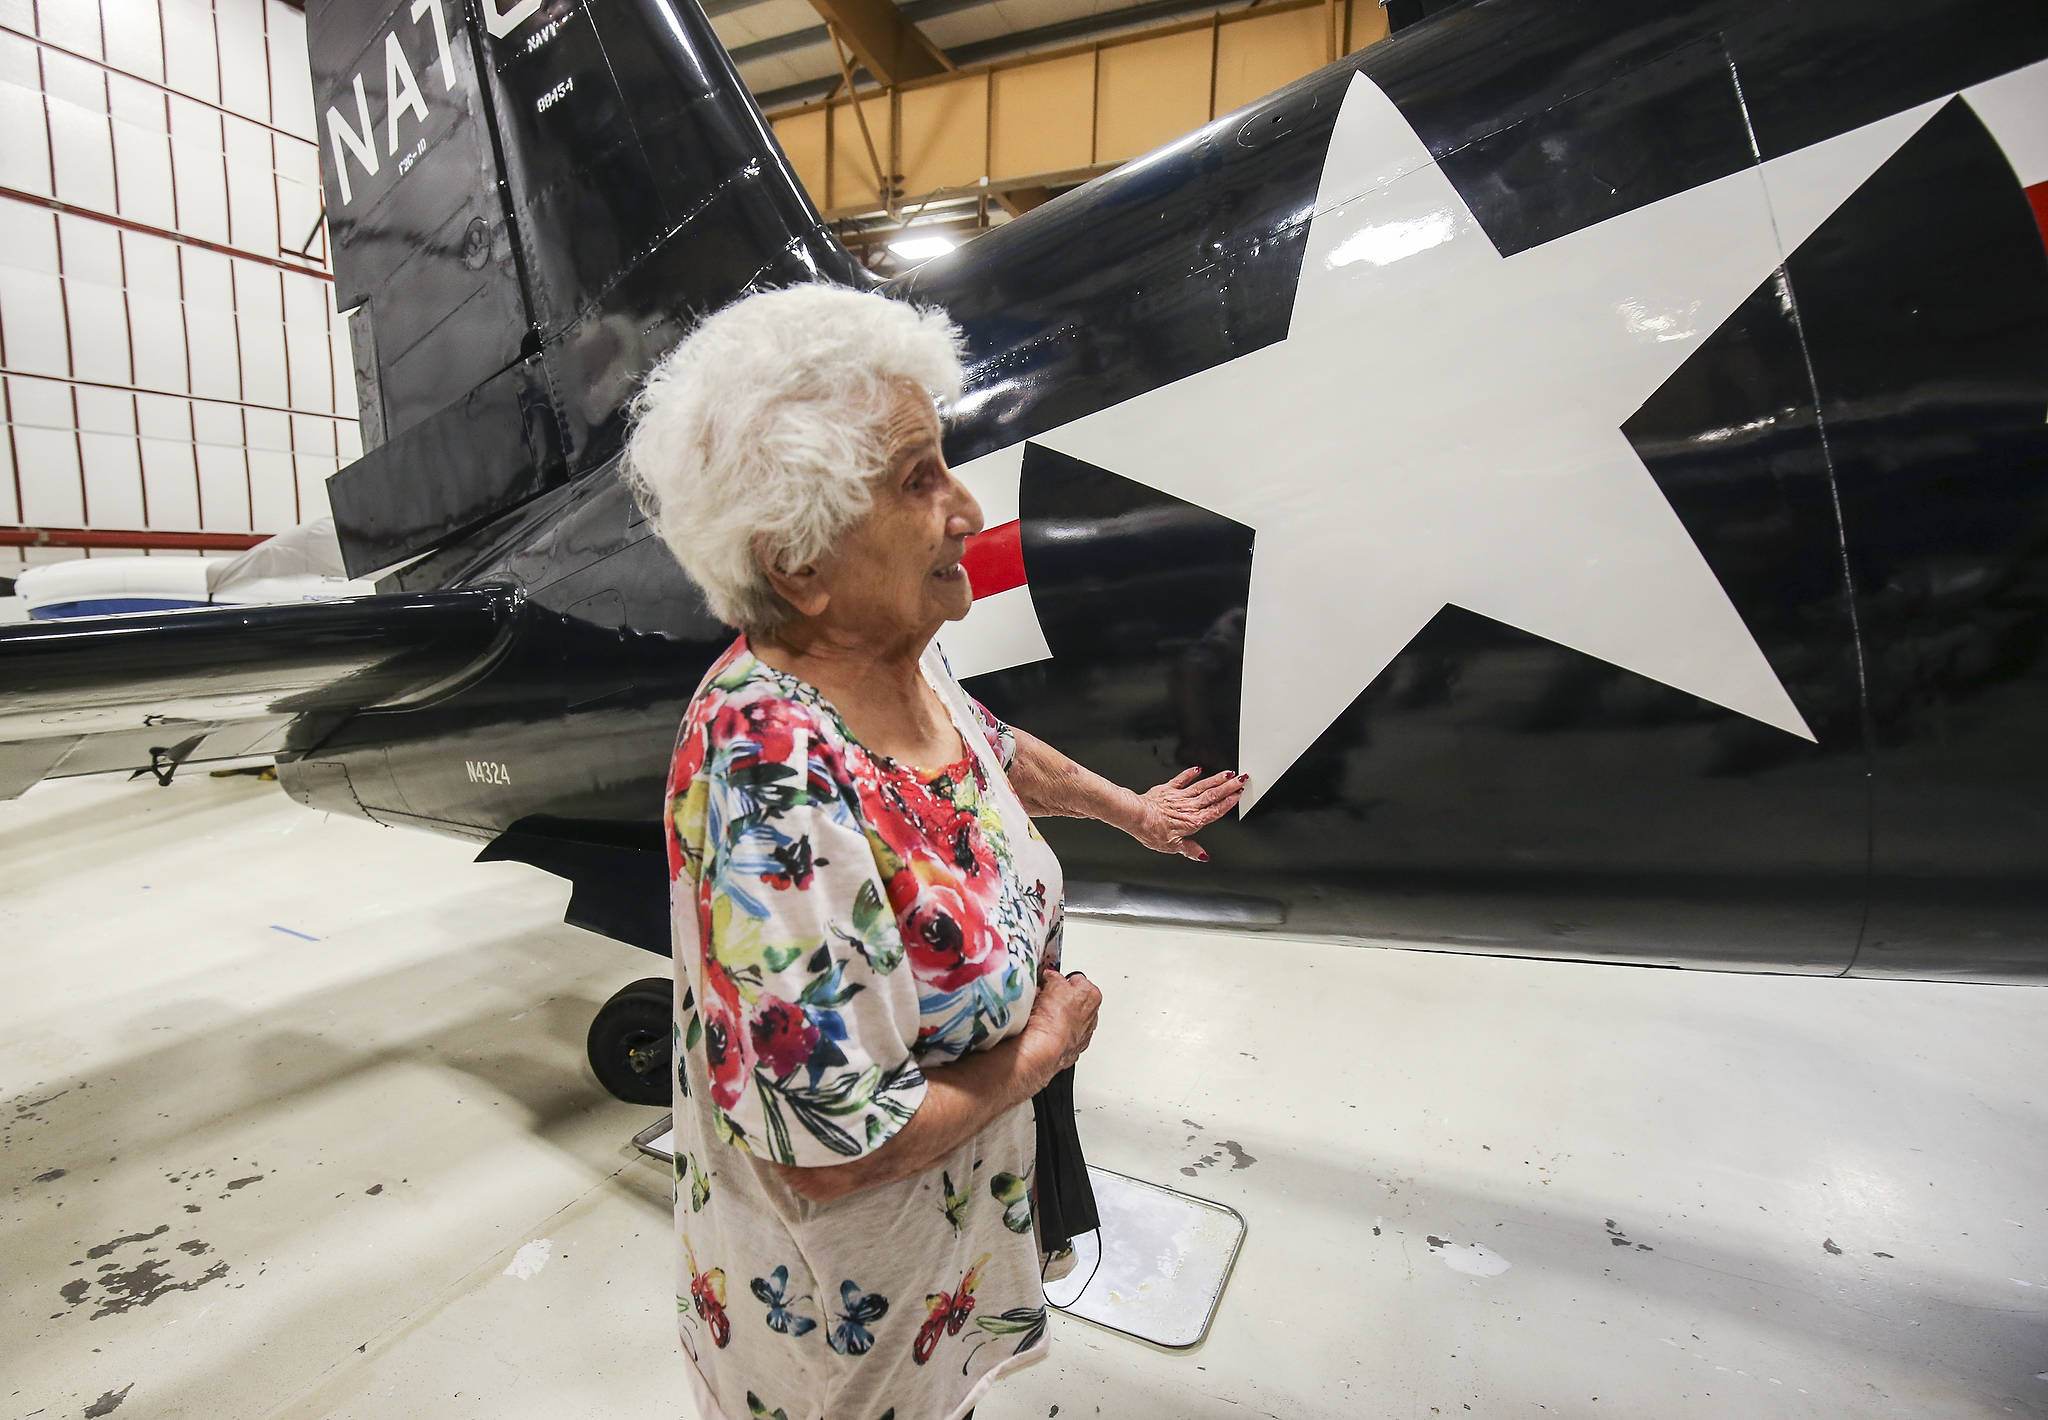 """Helen Mary Vaudrin, who was a """"Rosie the Riveter"""" at the Goodyear Aircraft plant in Akron, Ohio, during World War II, touches an F2G-1 Super Corsair at the Museum of Flight's Restoration Center & Reserve Collection at Paine Field on Wednesday in Everett. It is believed that she riveted the fuselage of the plane. (Andy Bronson / The Herald)"""